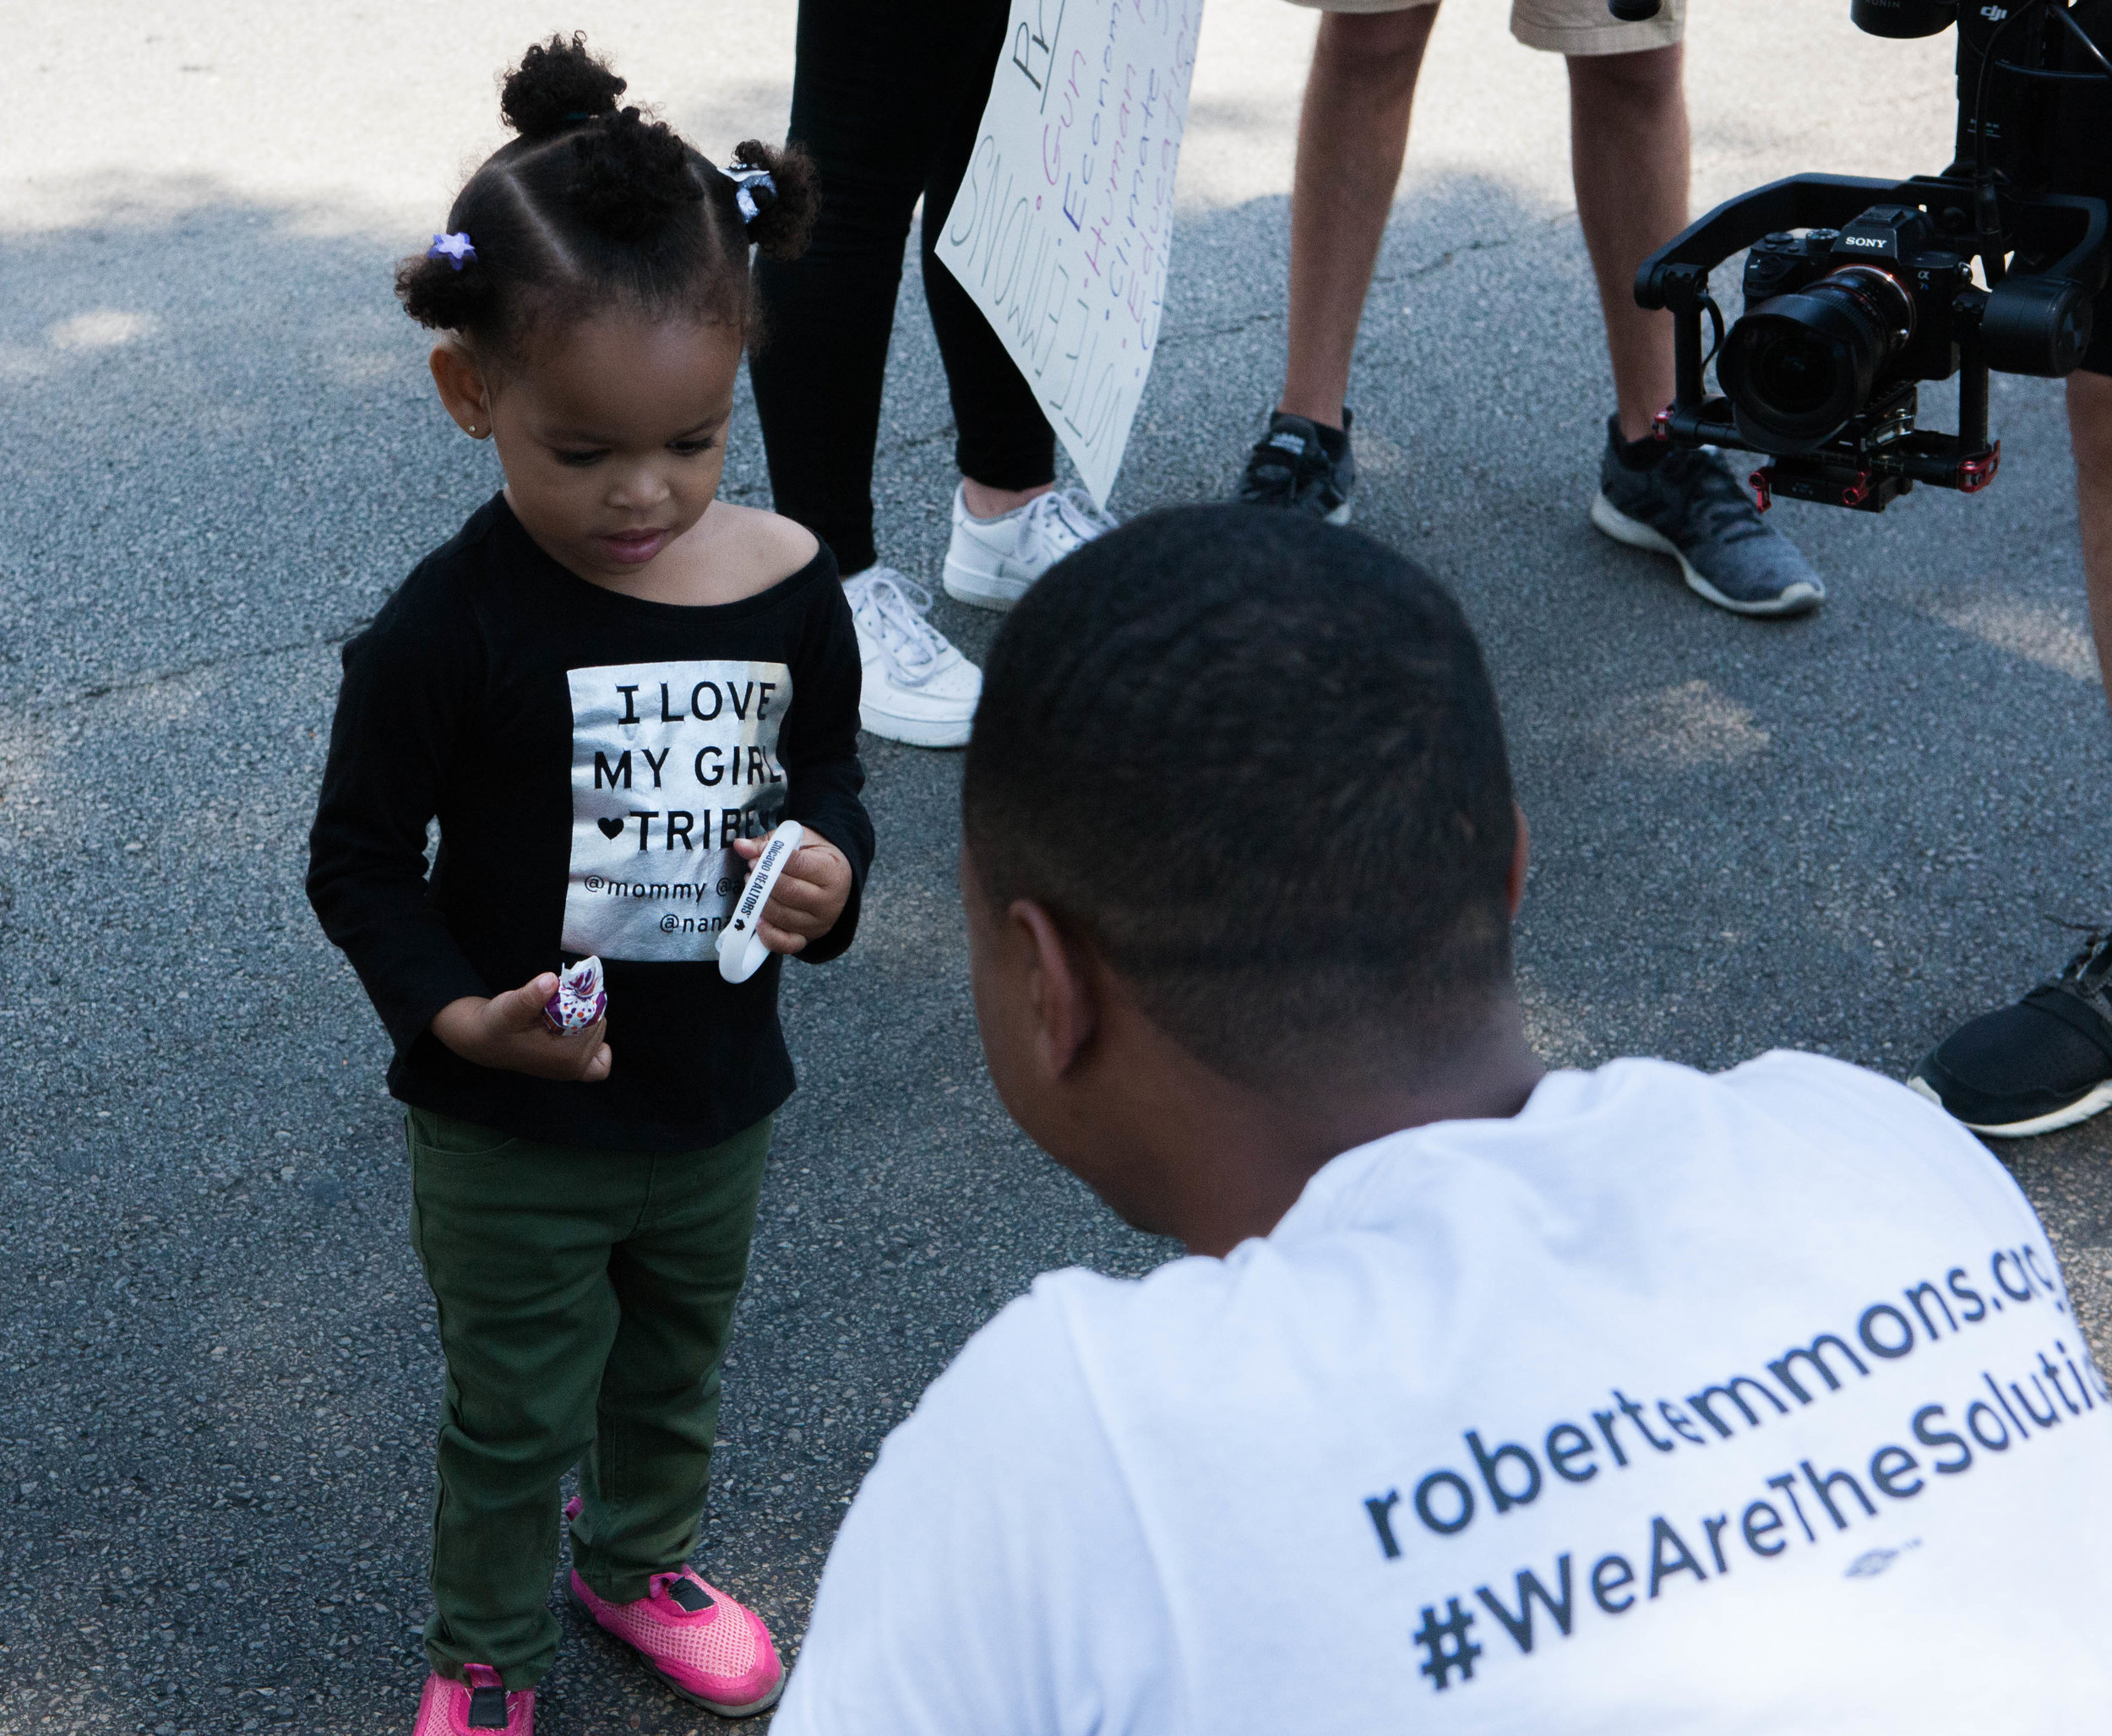 Robert Emmons Jr. crouches to speak with a young girl at the Bud Billiken Parade.